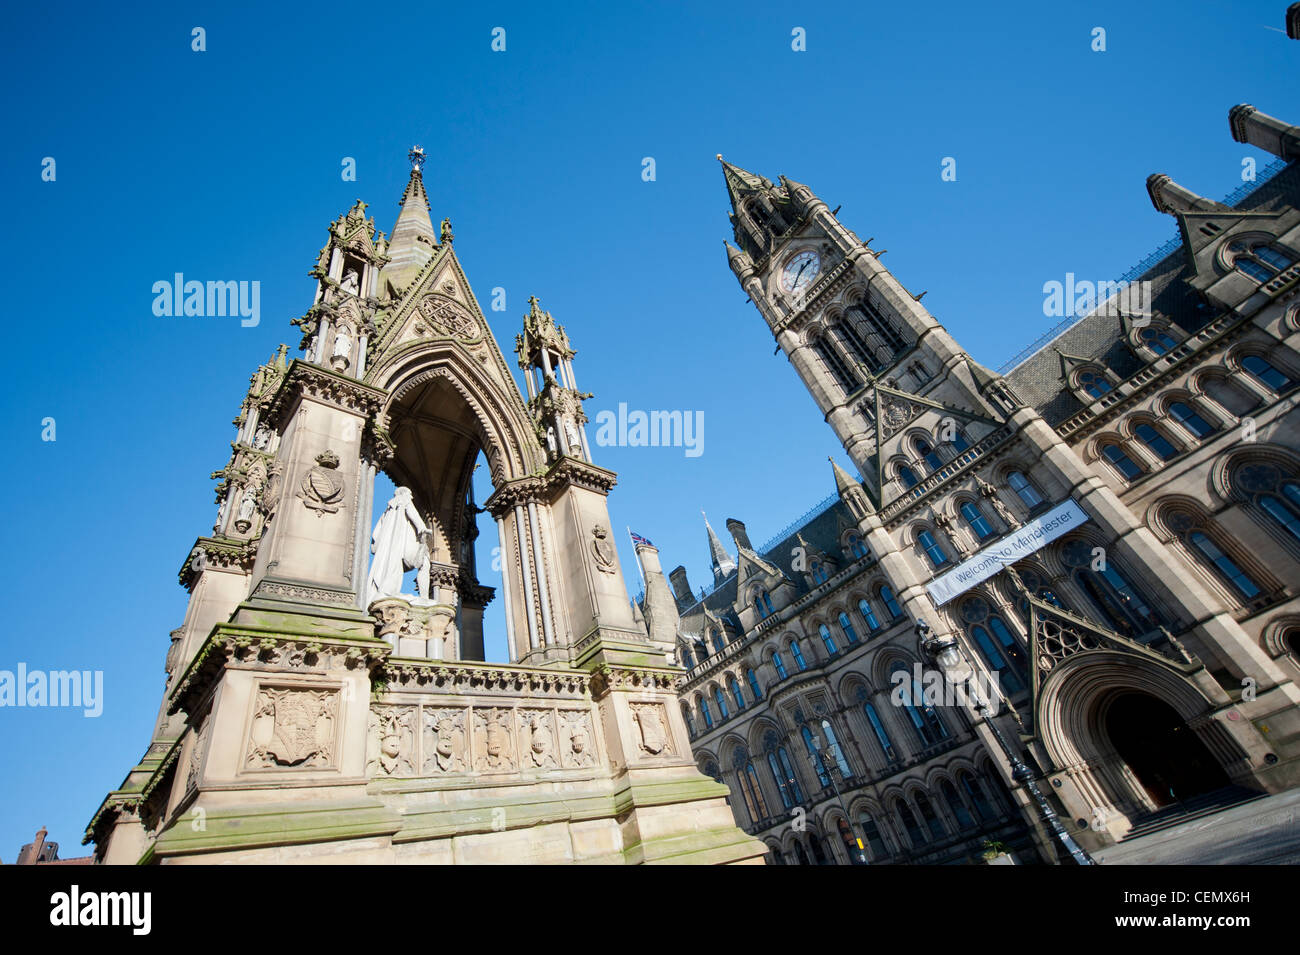 The Albert Memorial in Albert Square outside the town hall in Manchester City Centre on a clear day. - Stock Image